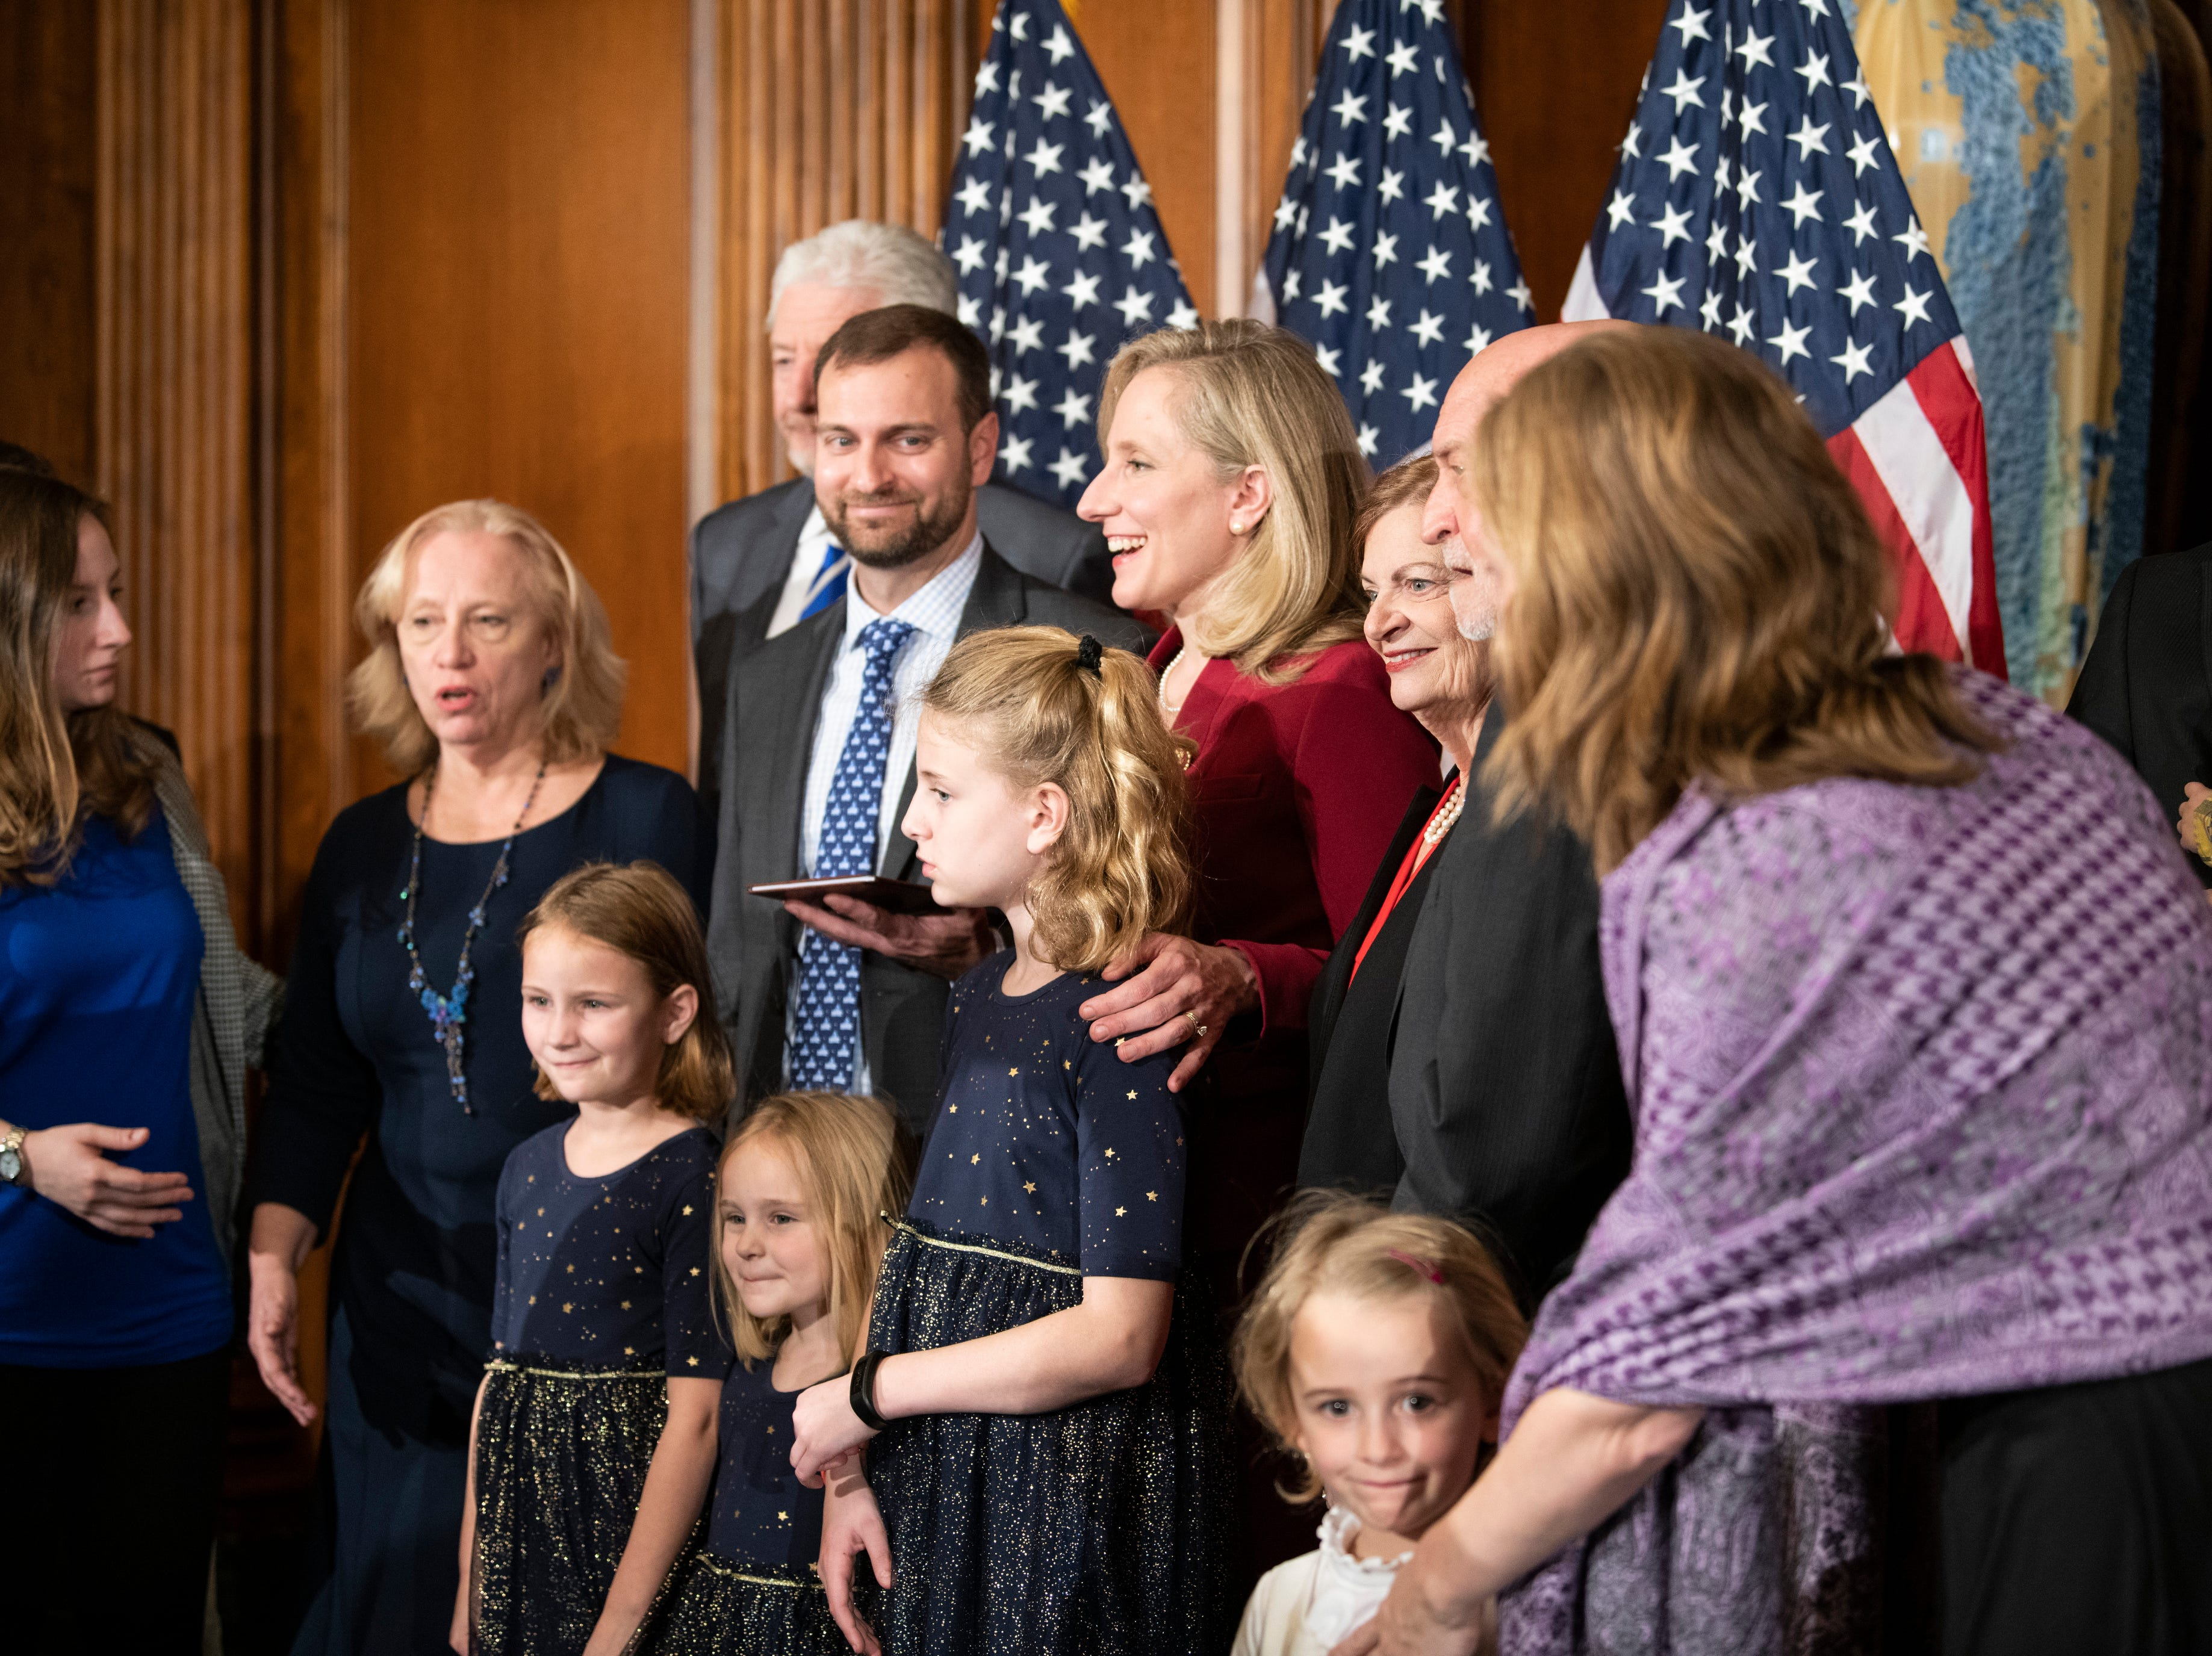 Congresswoman Abigail Spanberger (D, VA) is sworn in as a member of the 116th Congress surrounded by family.